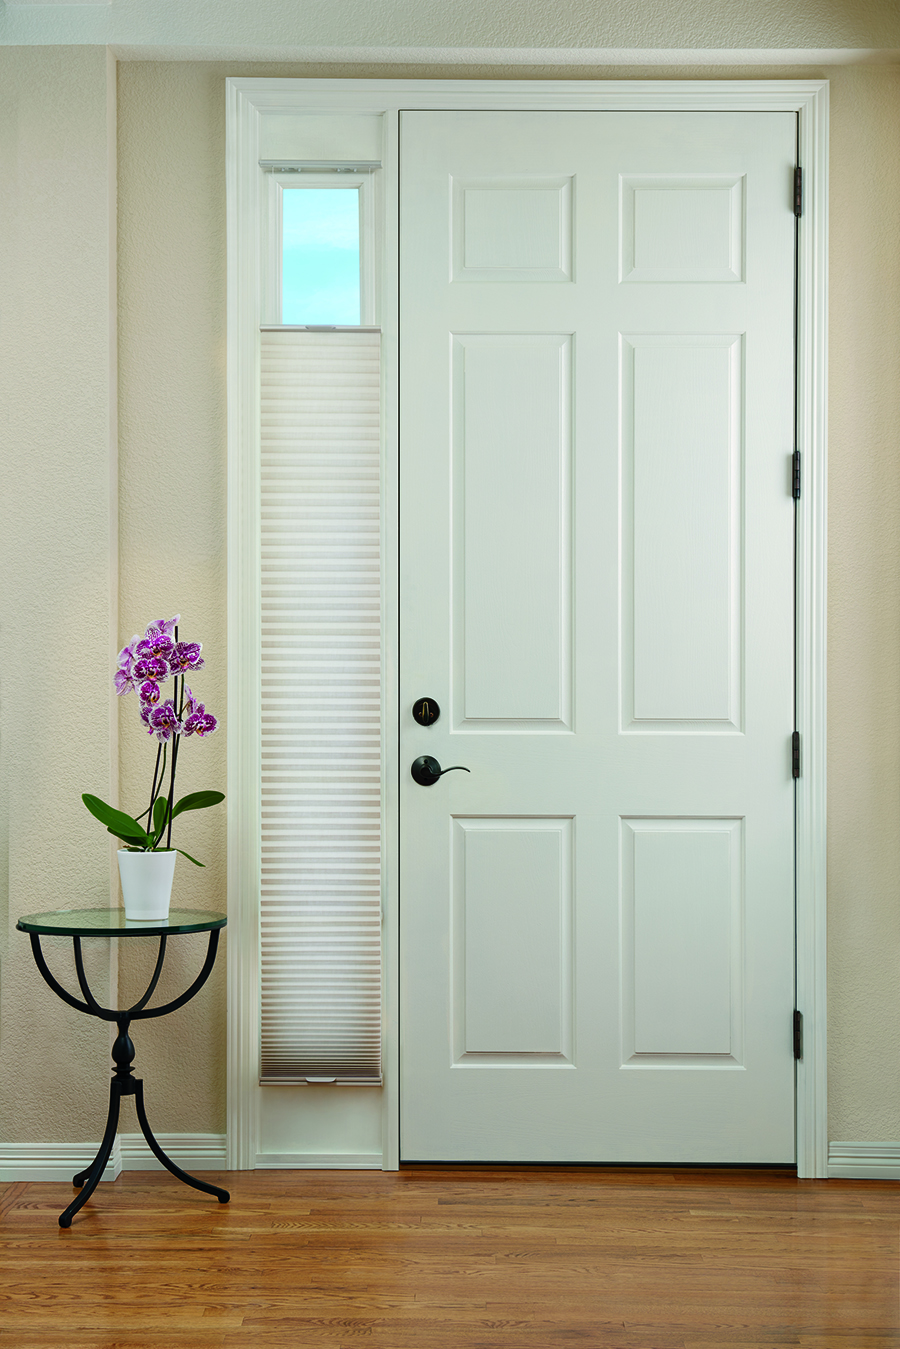 honeycomb shades cover entry door sidelights